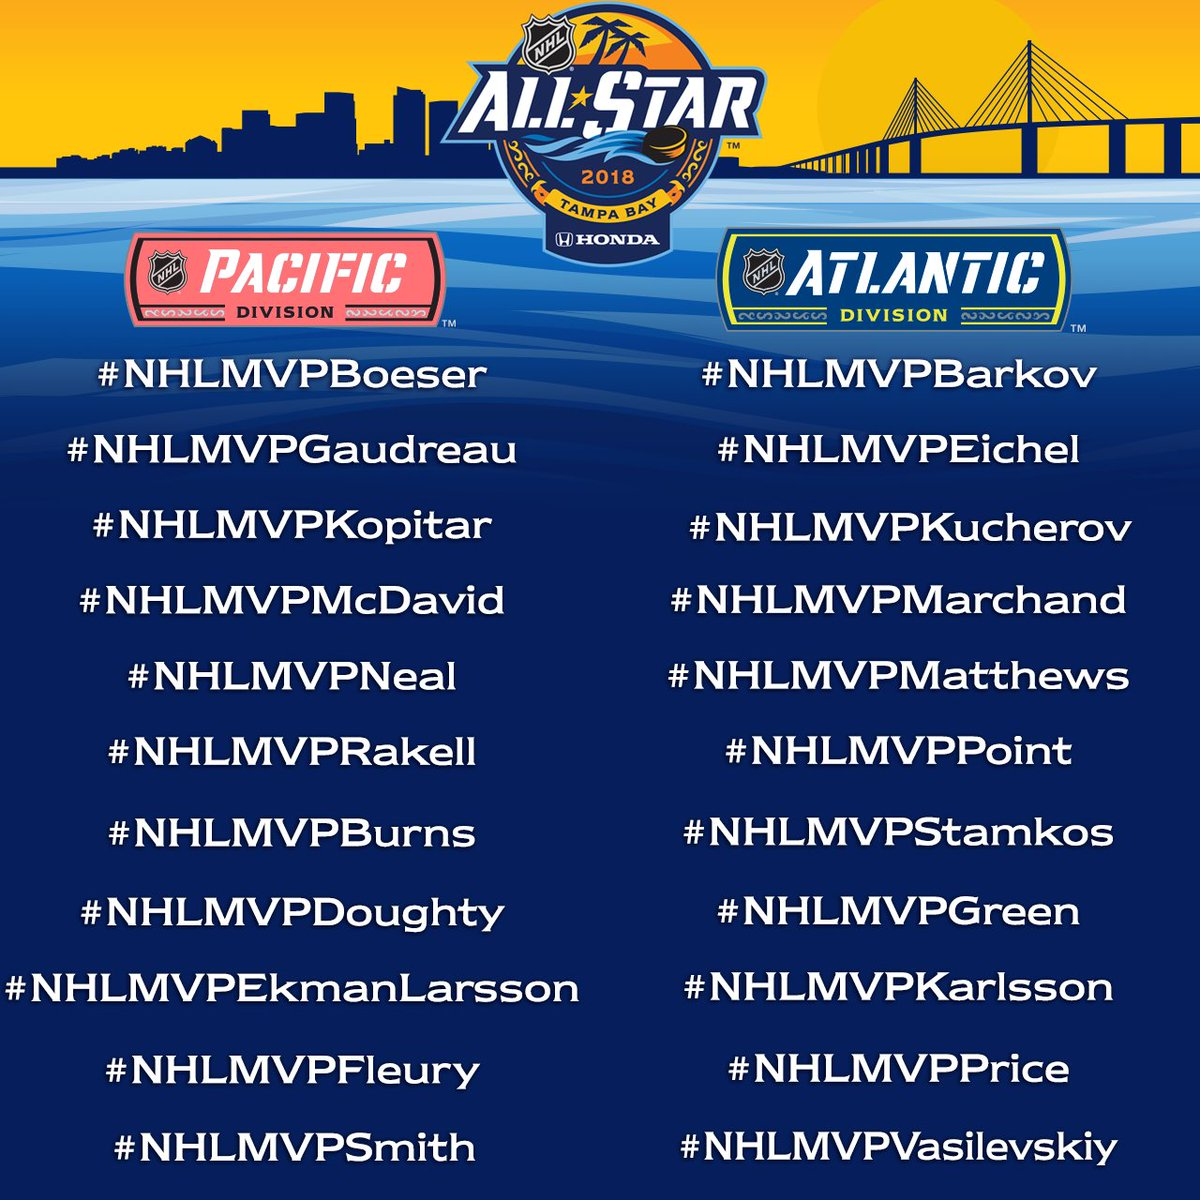 Its Time To Vote For The MVP Of 2018 Honda NHLAllStar Game Players From Pacific And Atlantic Divisions Are Eligible Be Crowned